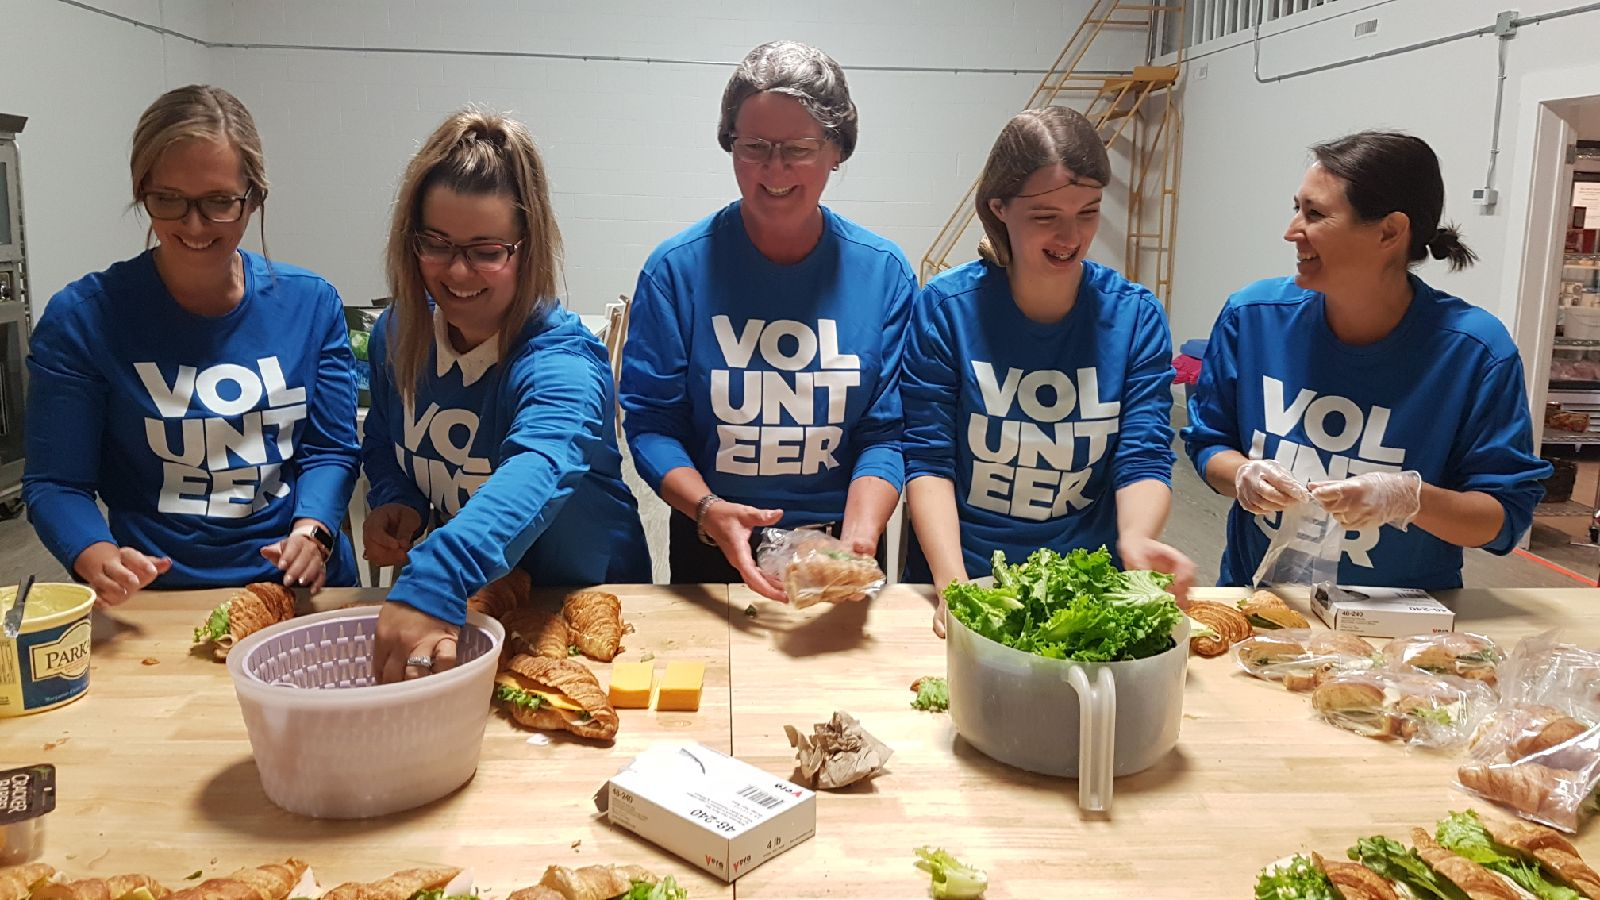 A team of Western Financial Group volunteers helps to build sandwiches for local not-for-profit Food for Thought